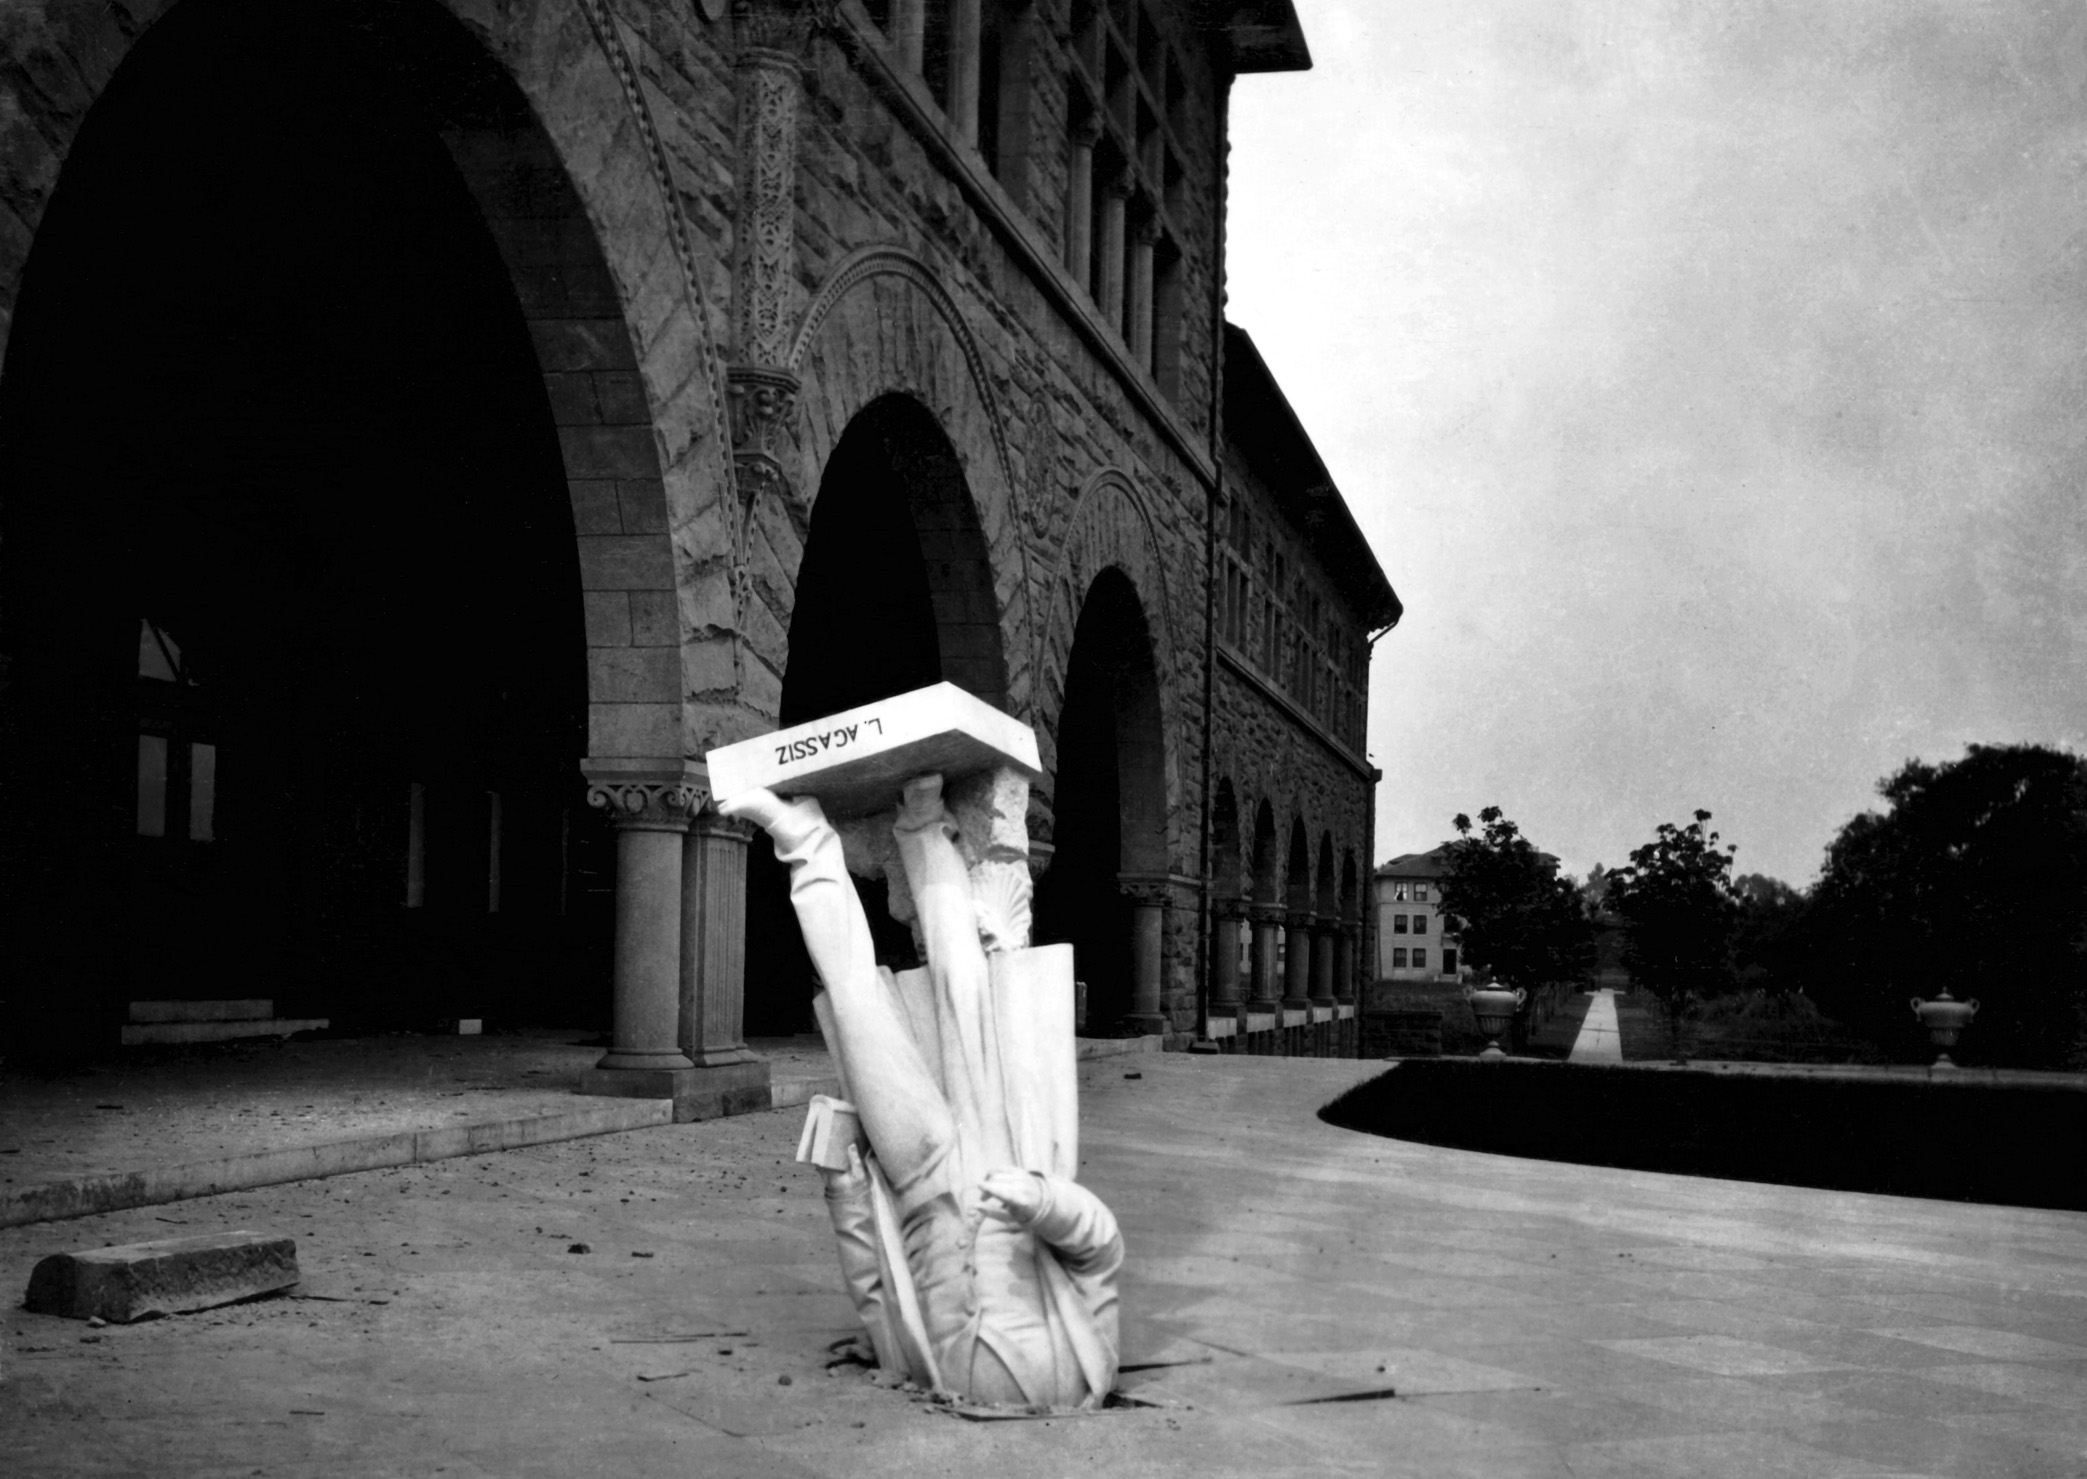 A statue of Louis Agassiz upturned on the Stanford University campus during a 1906 earthquake.